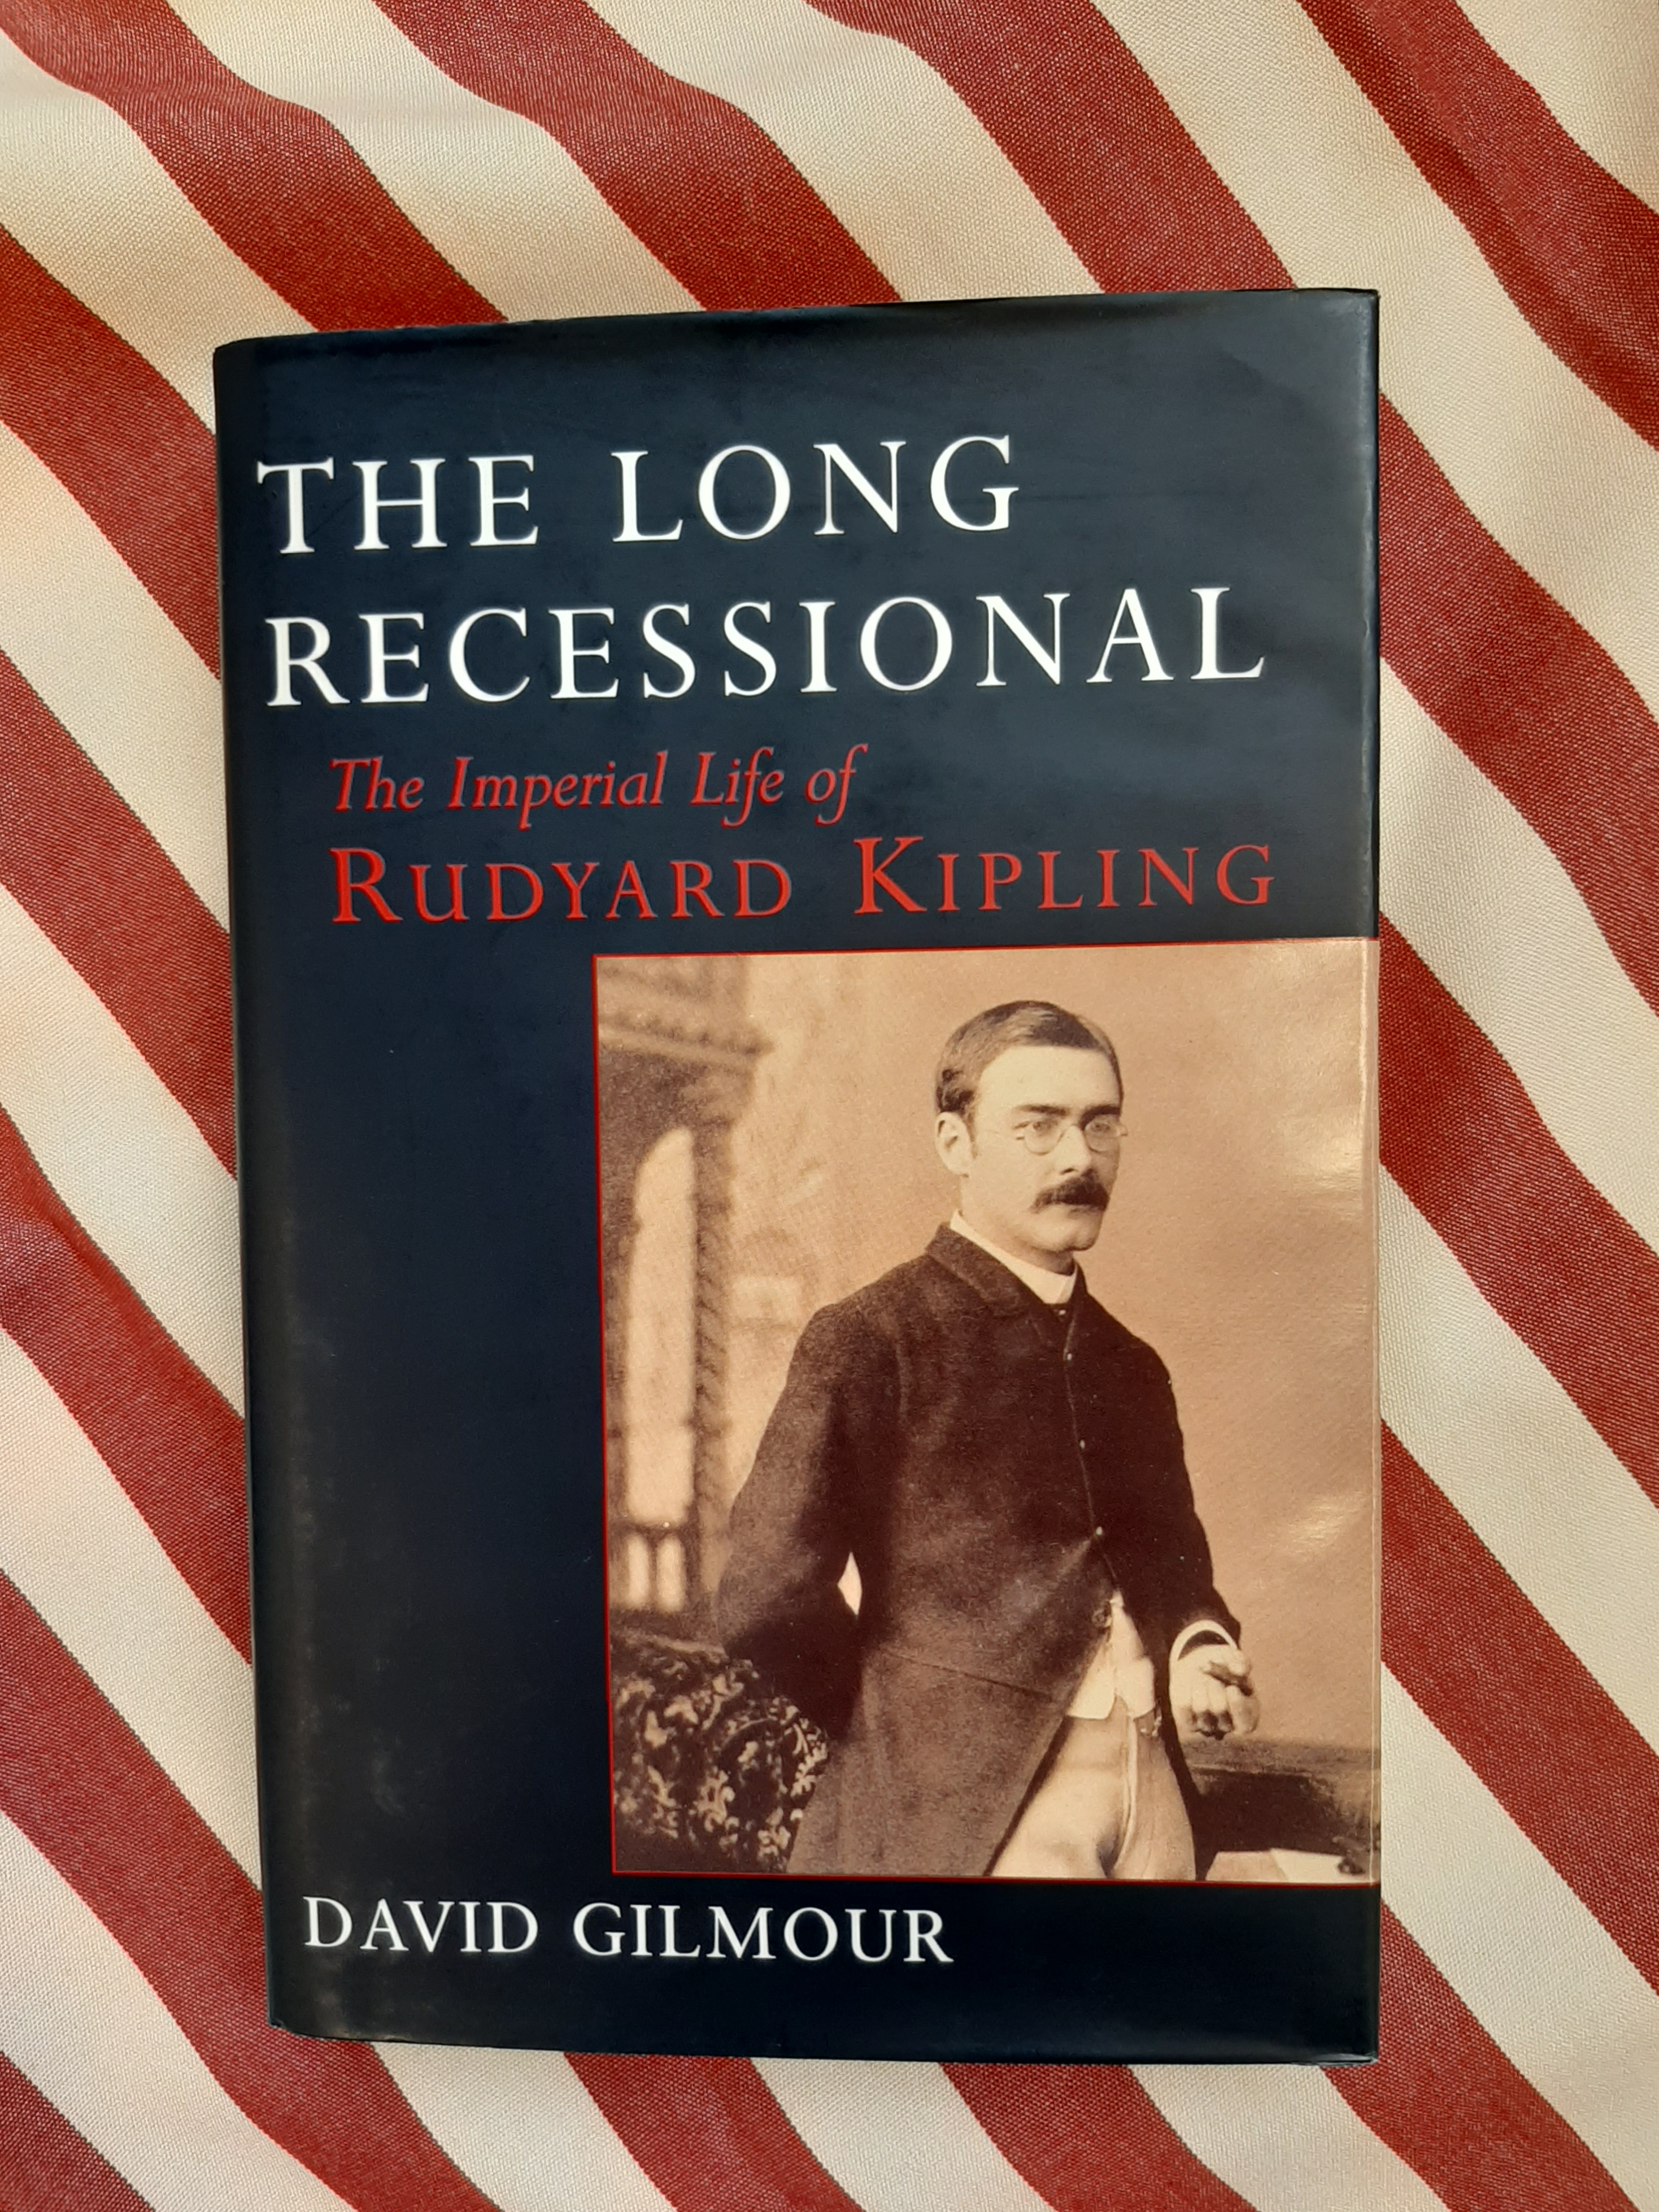 The long recessional the Imperial Life of Rudyard Kipling